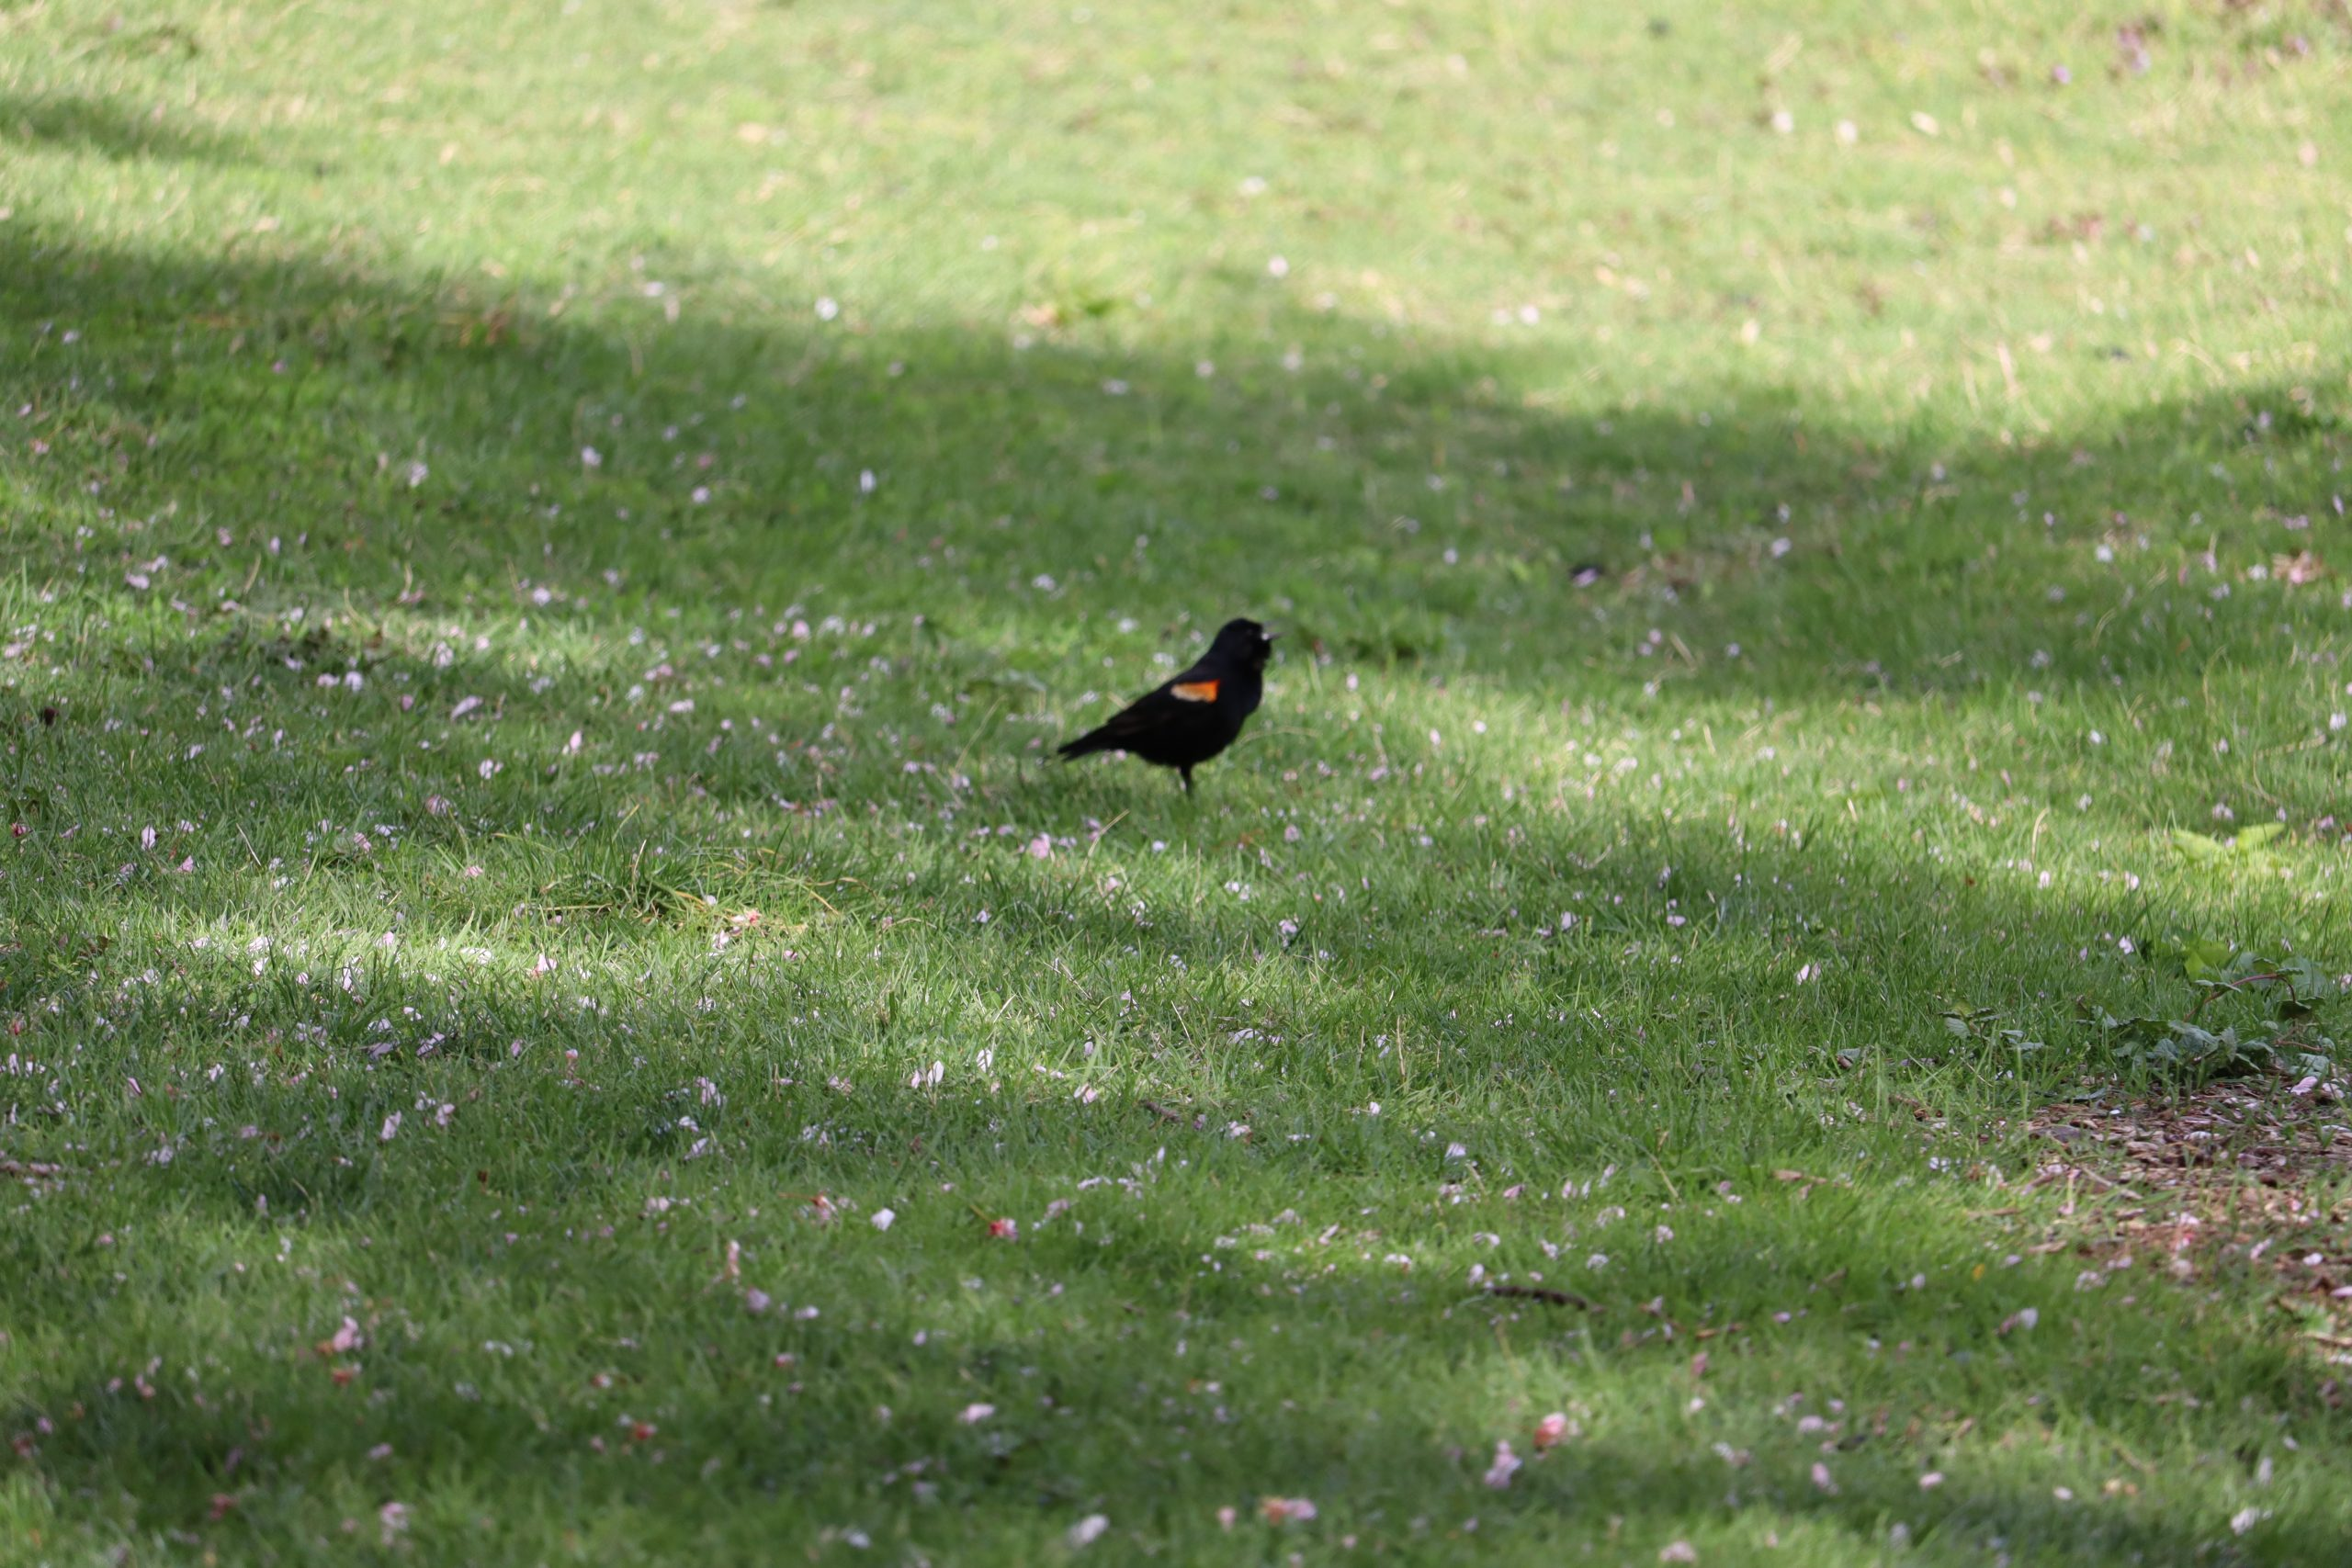 According to the Merlin app, this is a red-winged blackbird. This identification was particularly tricky at first. The red and yellow appeared orange at first and with the bird moving it was hard to see details. Taking a picture I could clearly see the distinct colors.